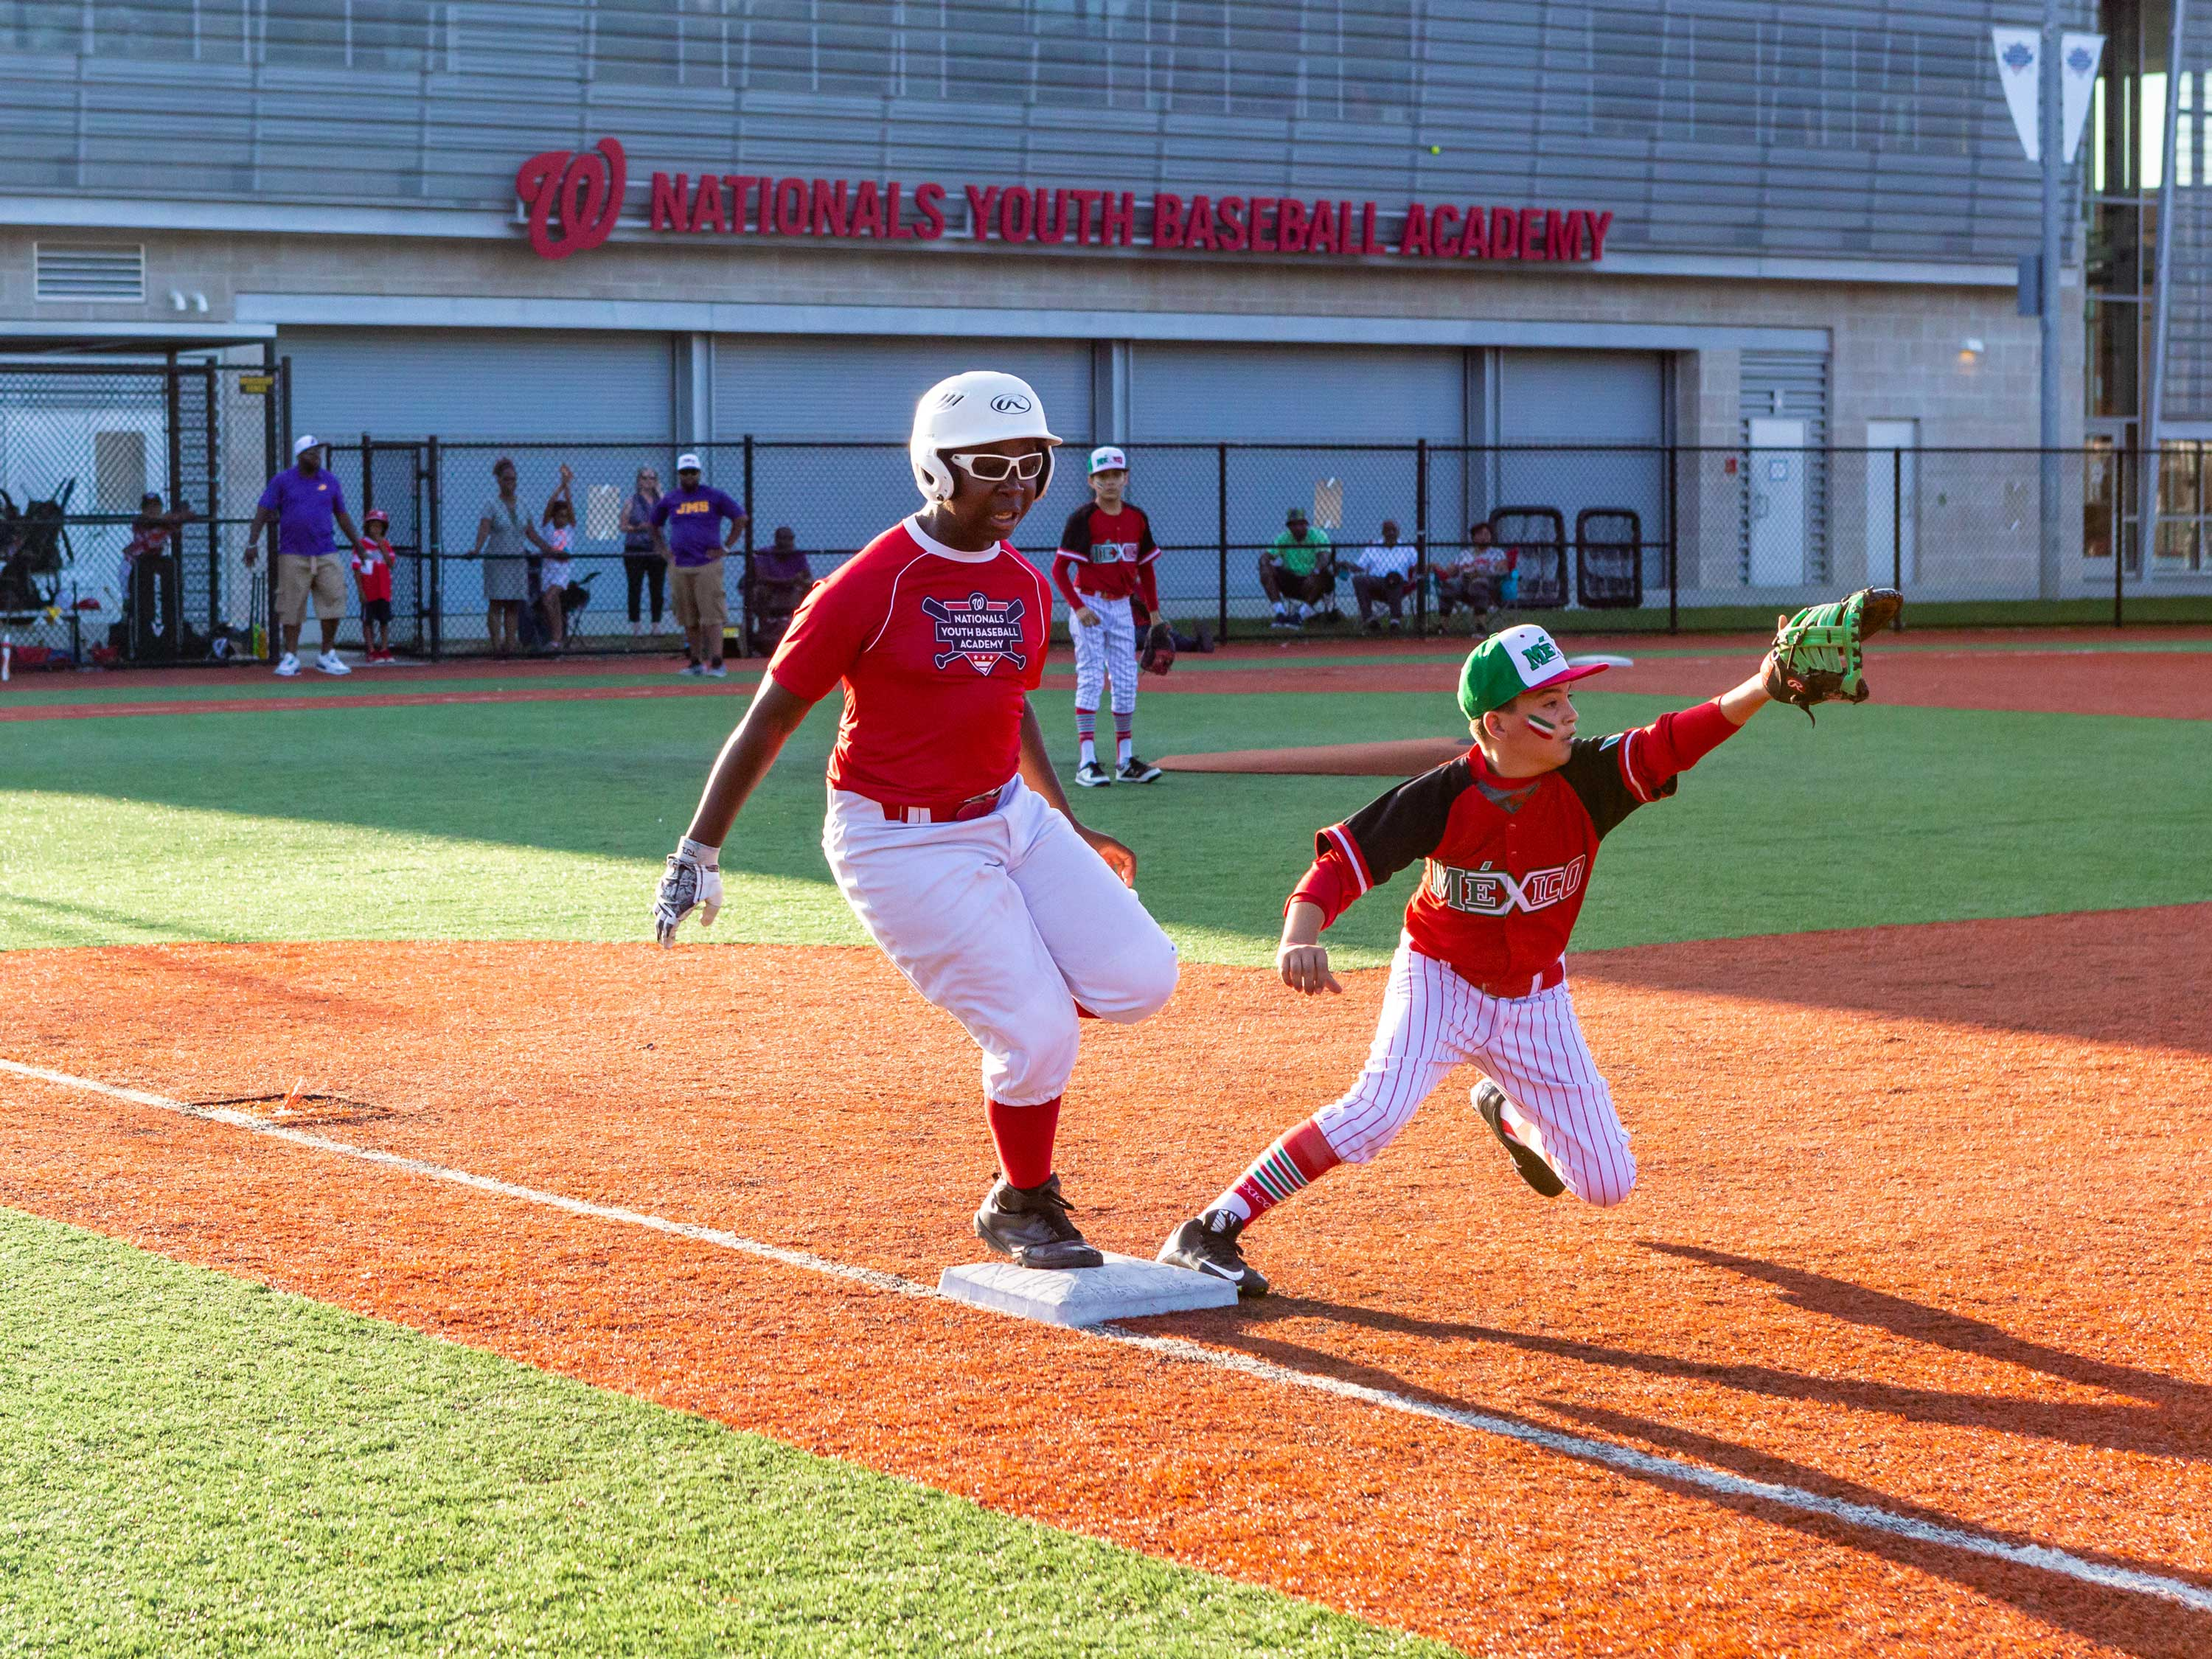 aaa51b3511a Tony Hairston of the Mamie Johnson Little League (MJLL) Majors U12 team  runs to first base during a scrimmage against a team from Mexico at the  Washington ...